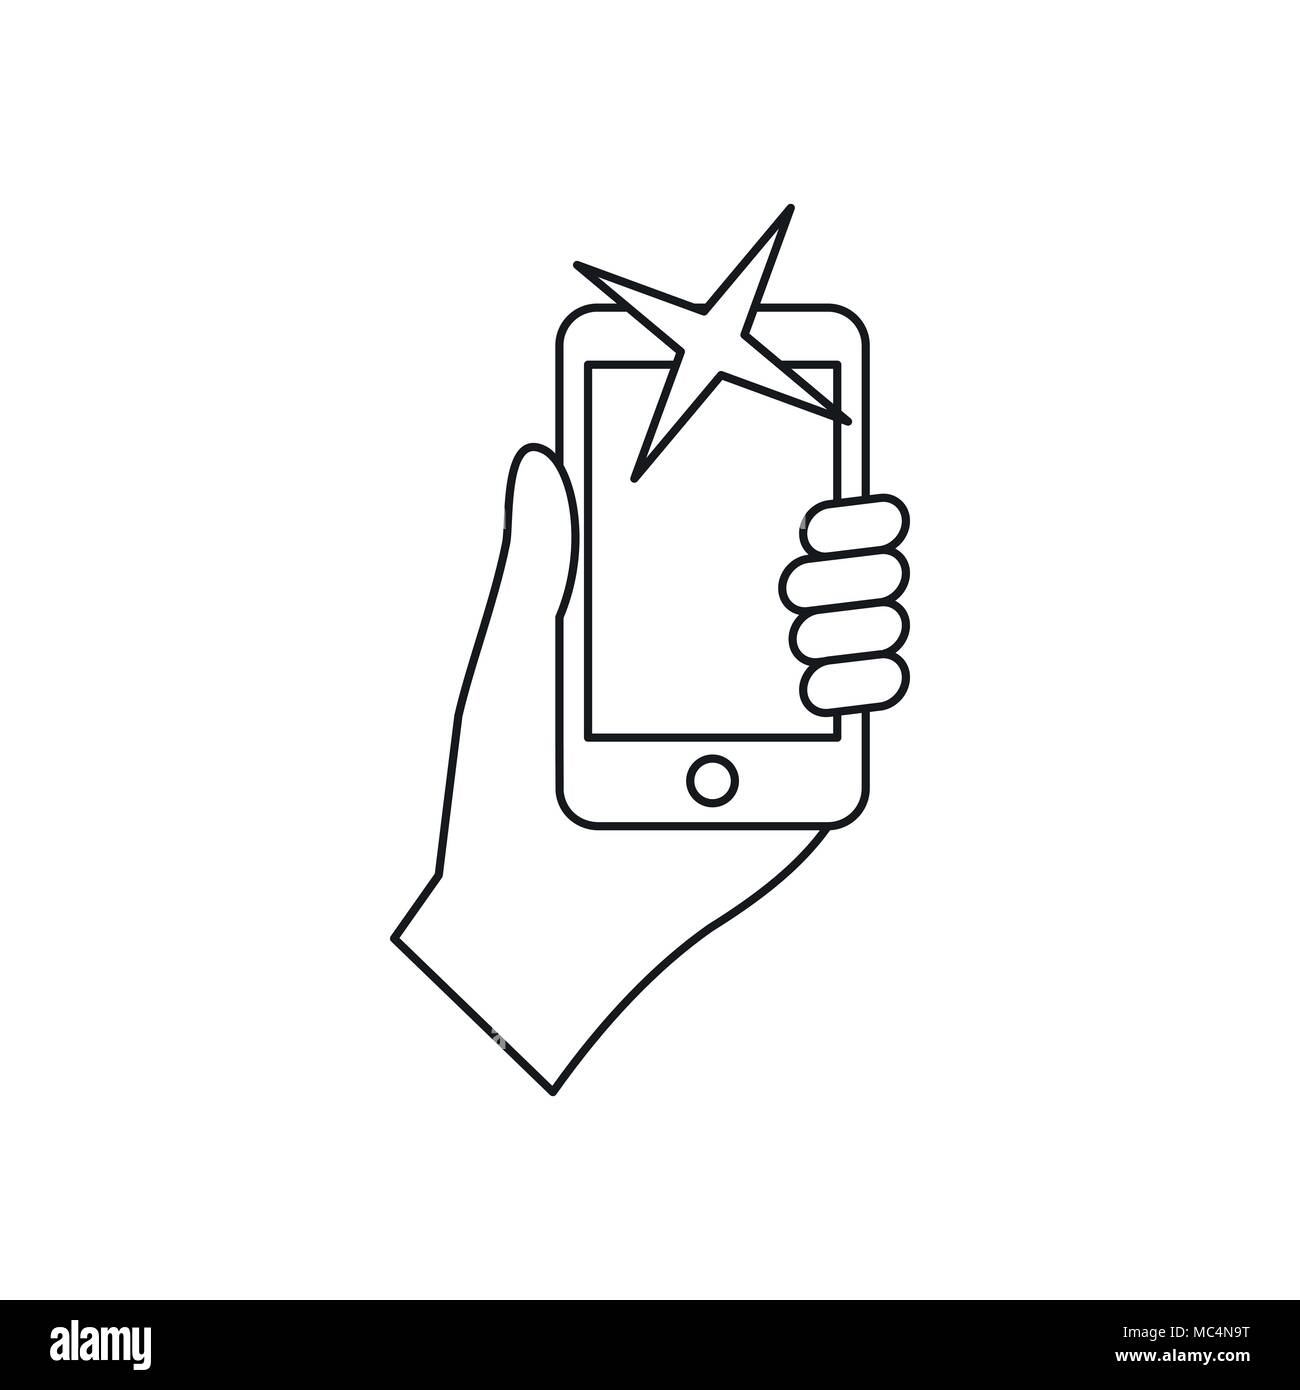 Hand photographed on mobile phone icon - Stock Vector